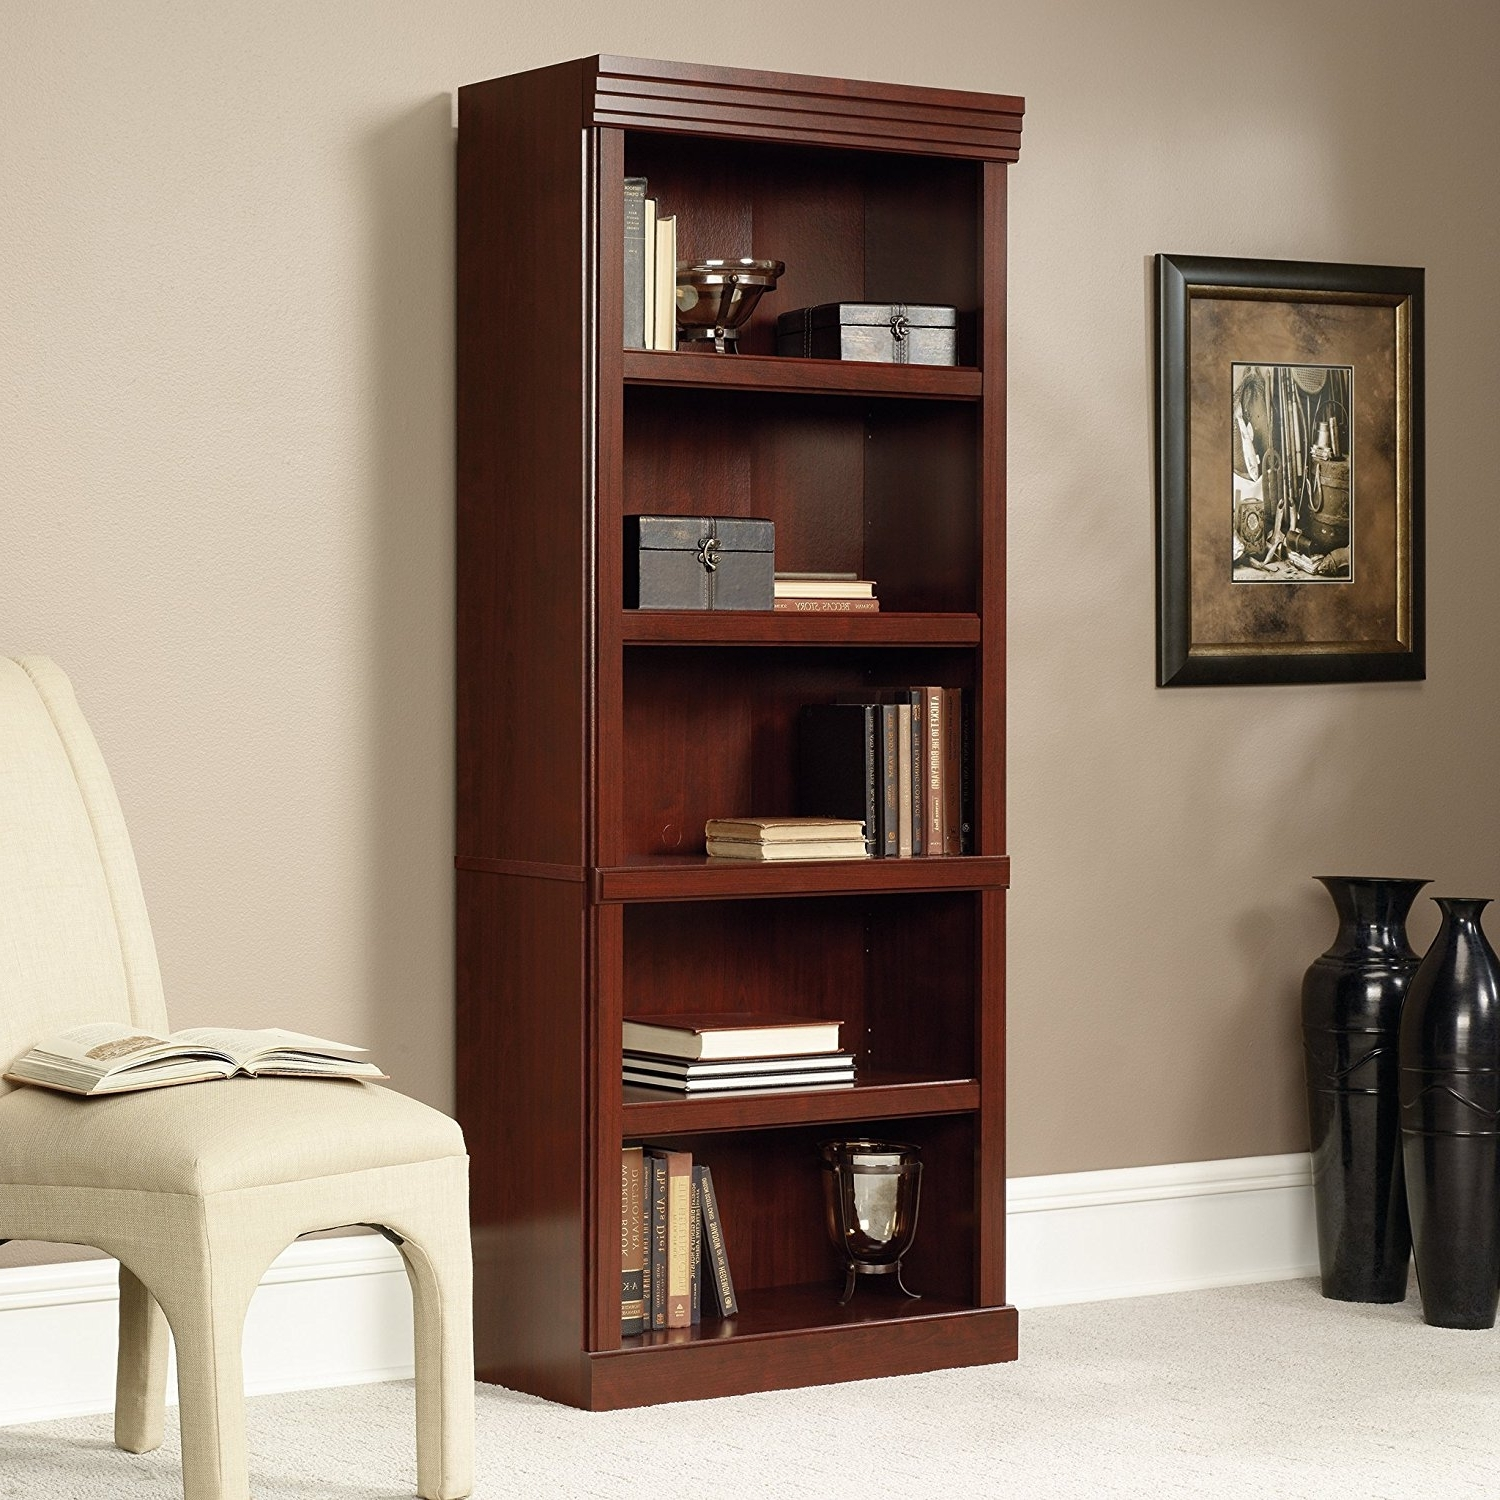 Latest Amazon: Sauder Heritage Hill Open Bookcase, Classic Cherry For Saunders Bookcases (View 5 of 15)